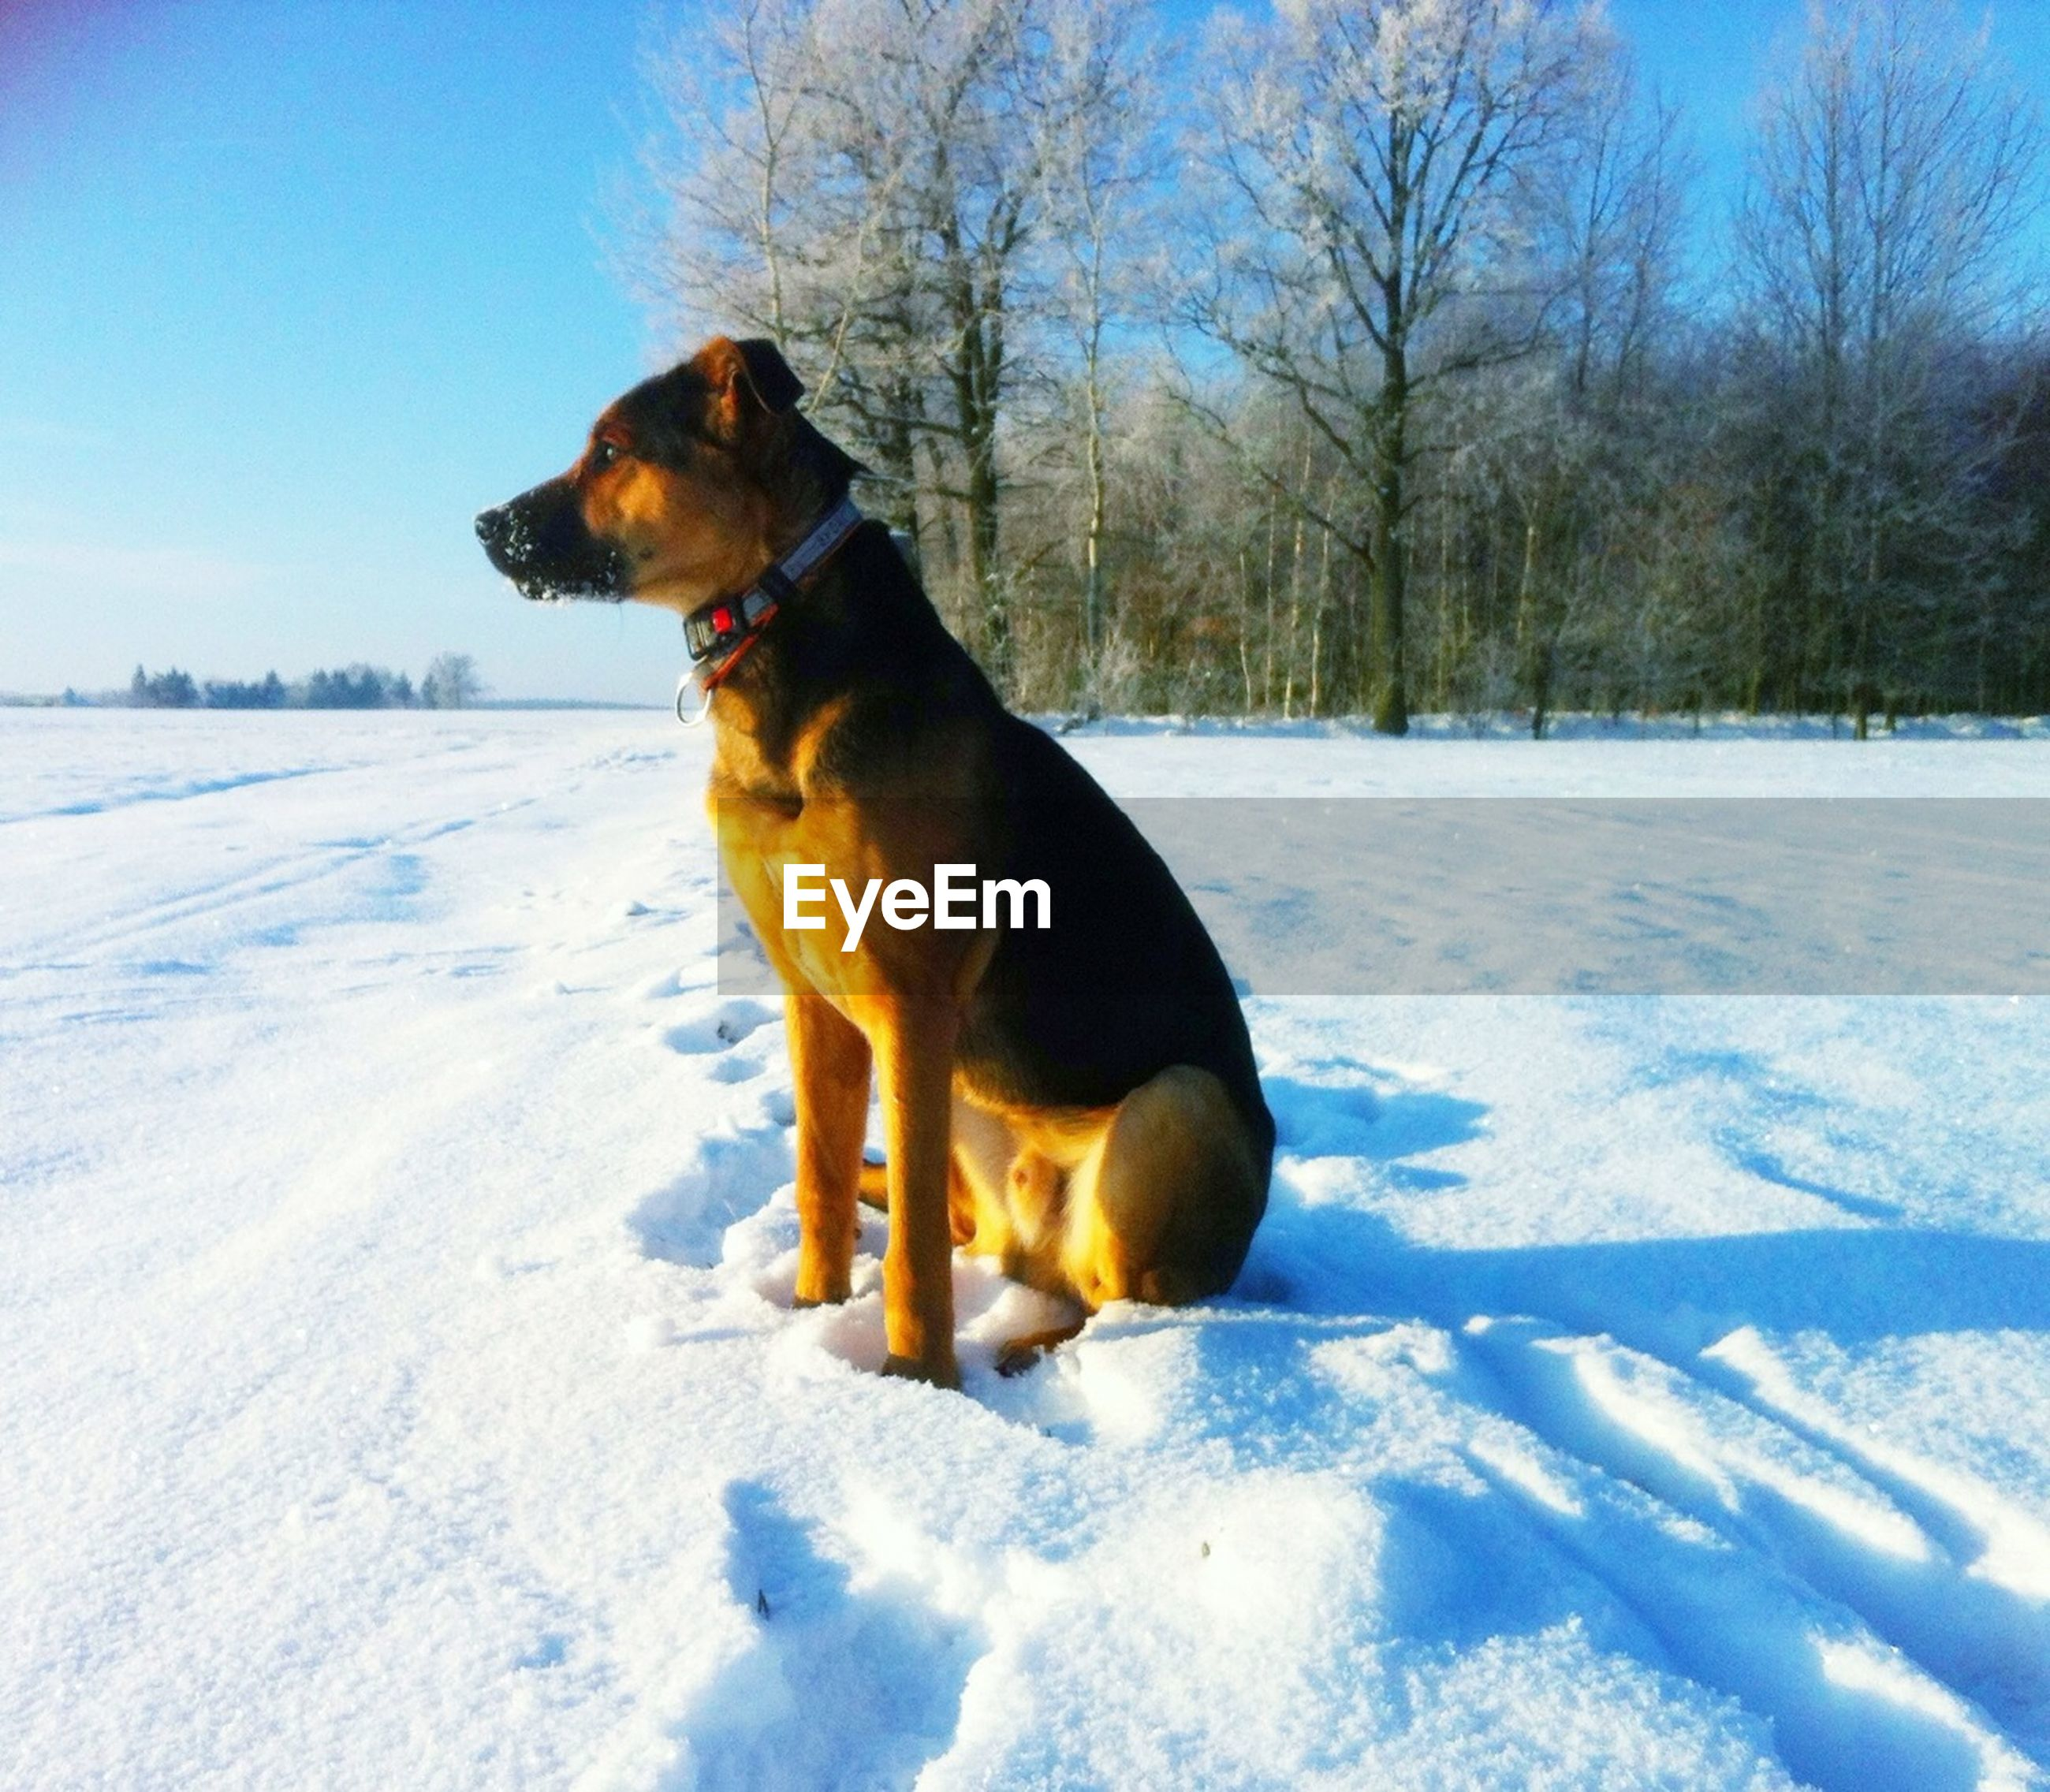 Dog on snow covered landscape against bare trees